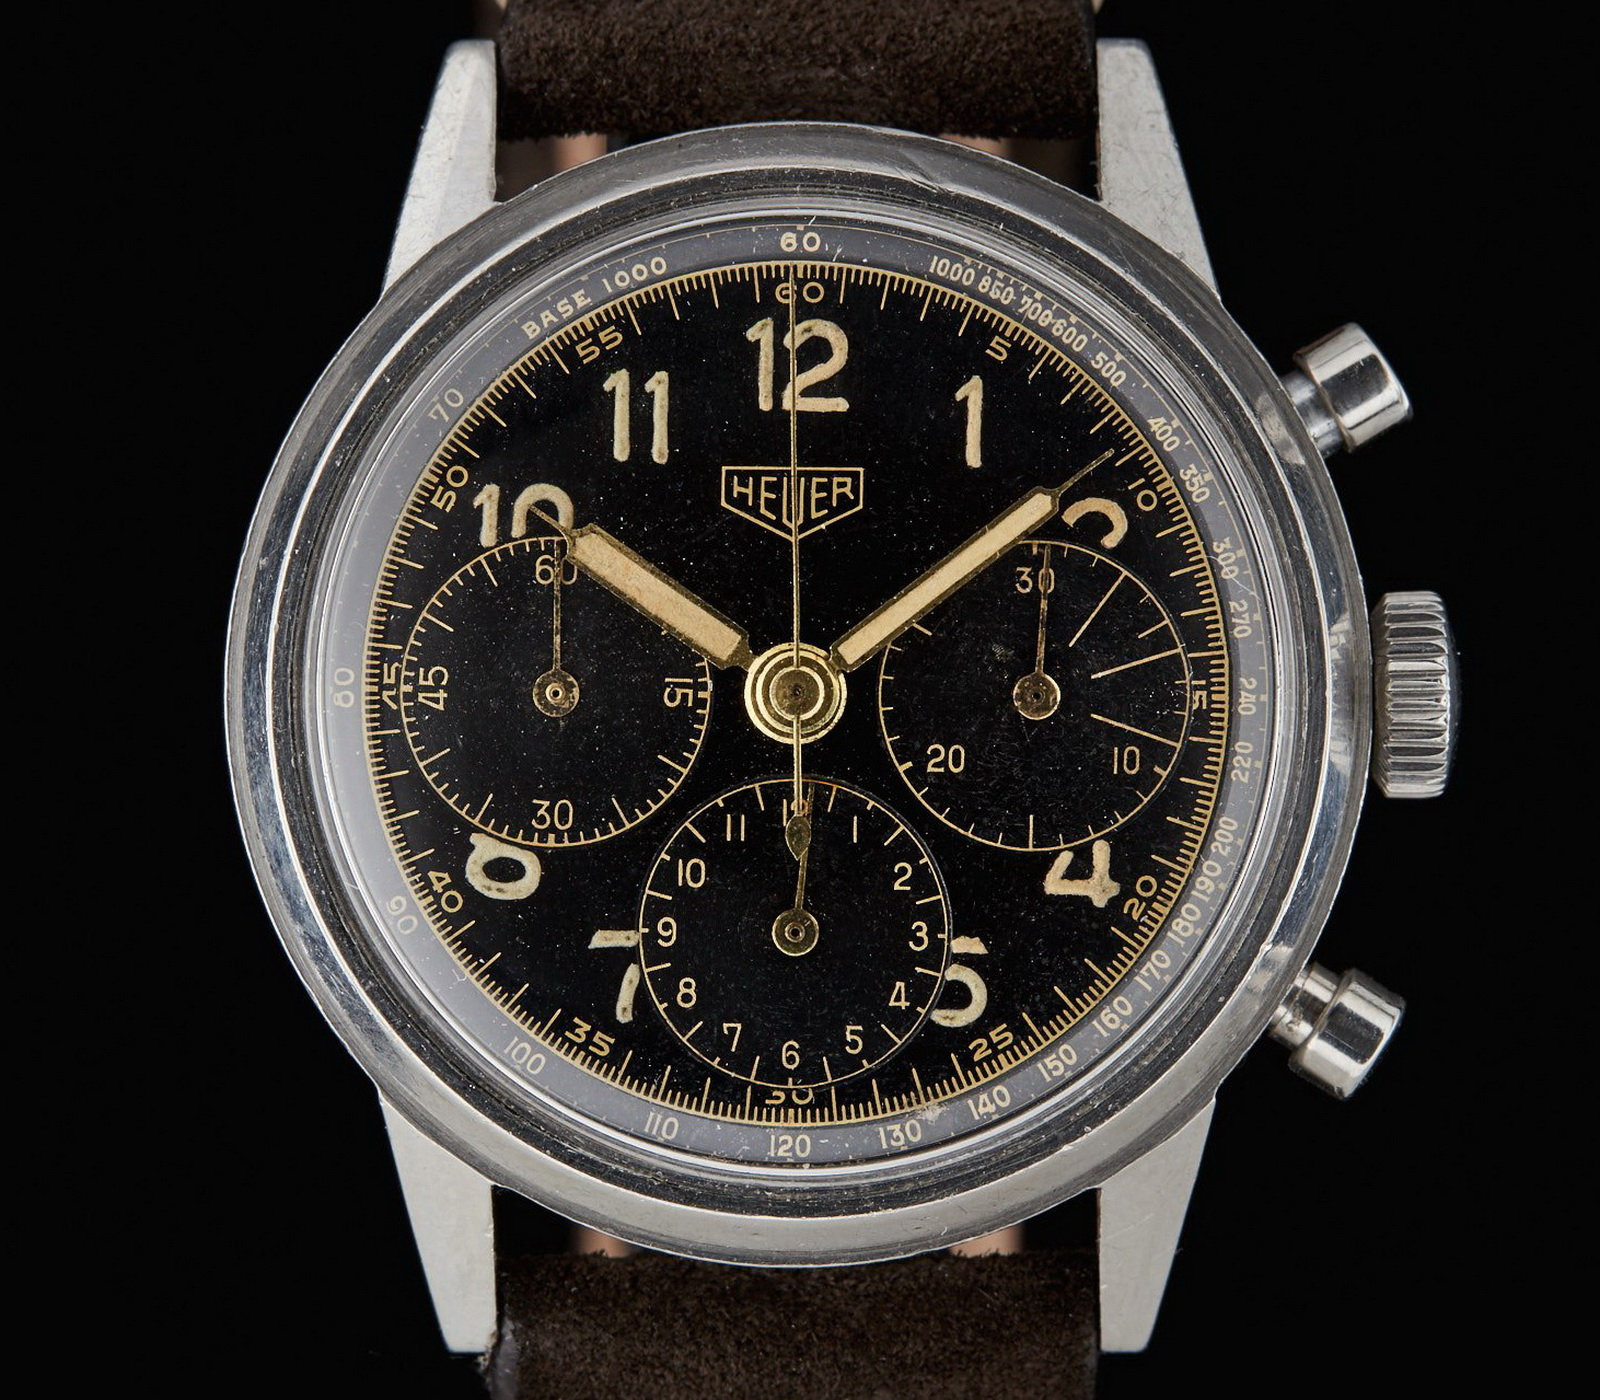 Three register chronograph, Reference 2447, from the 1940s / 1950s, with black gilt dial (Image: onthedash.com)